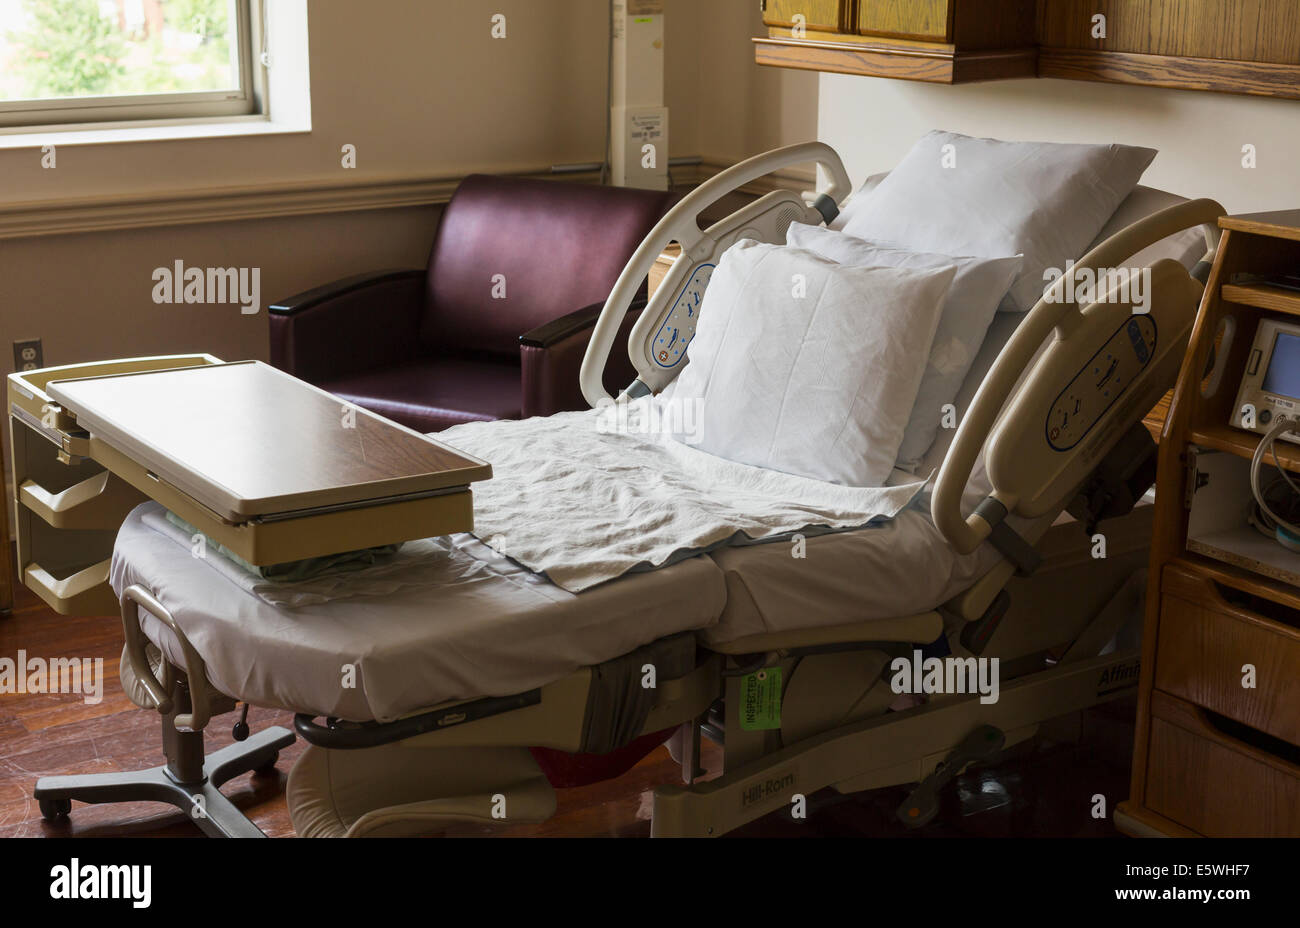 Empty hospital bed in USA maternity hospital with visitor